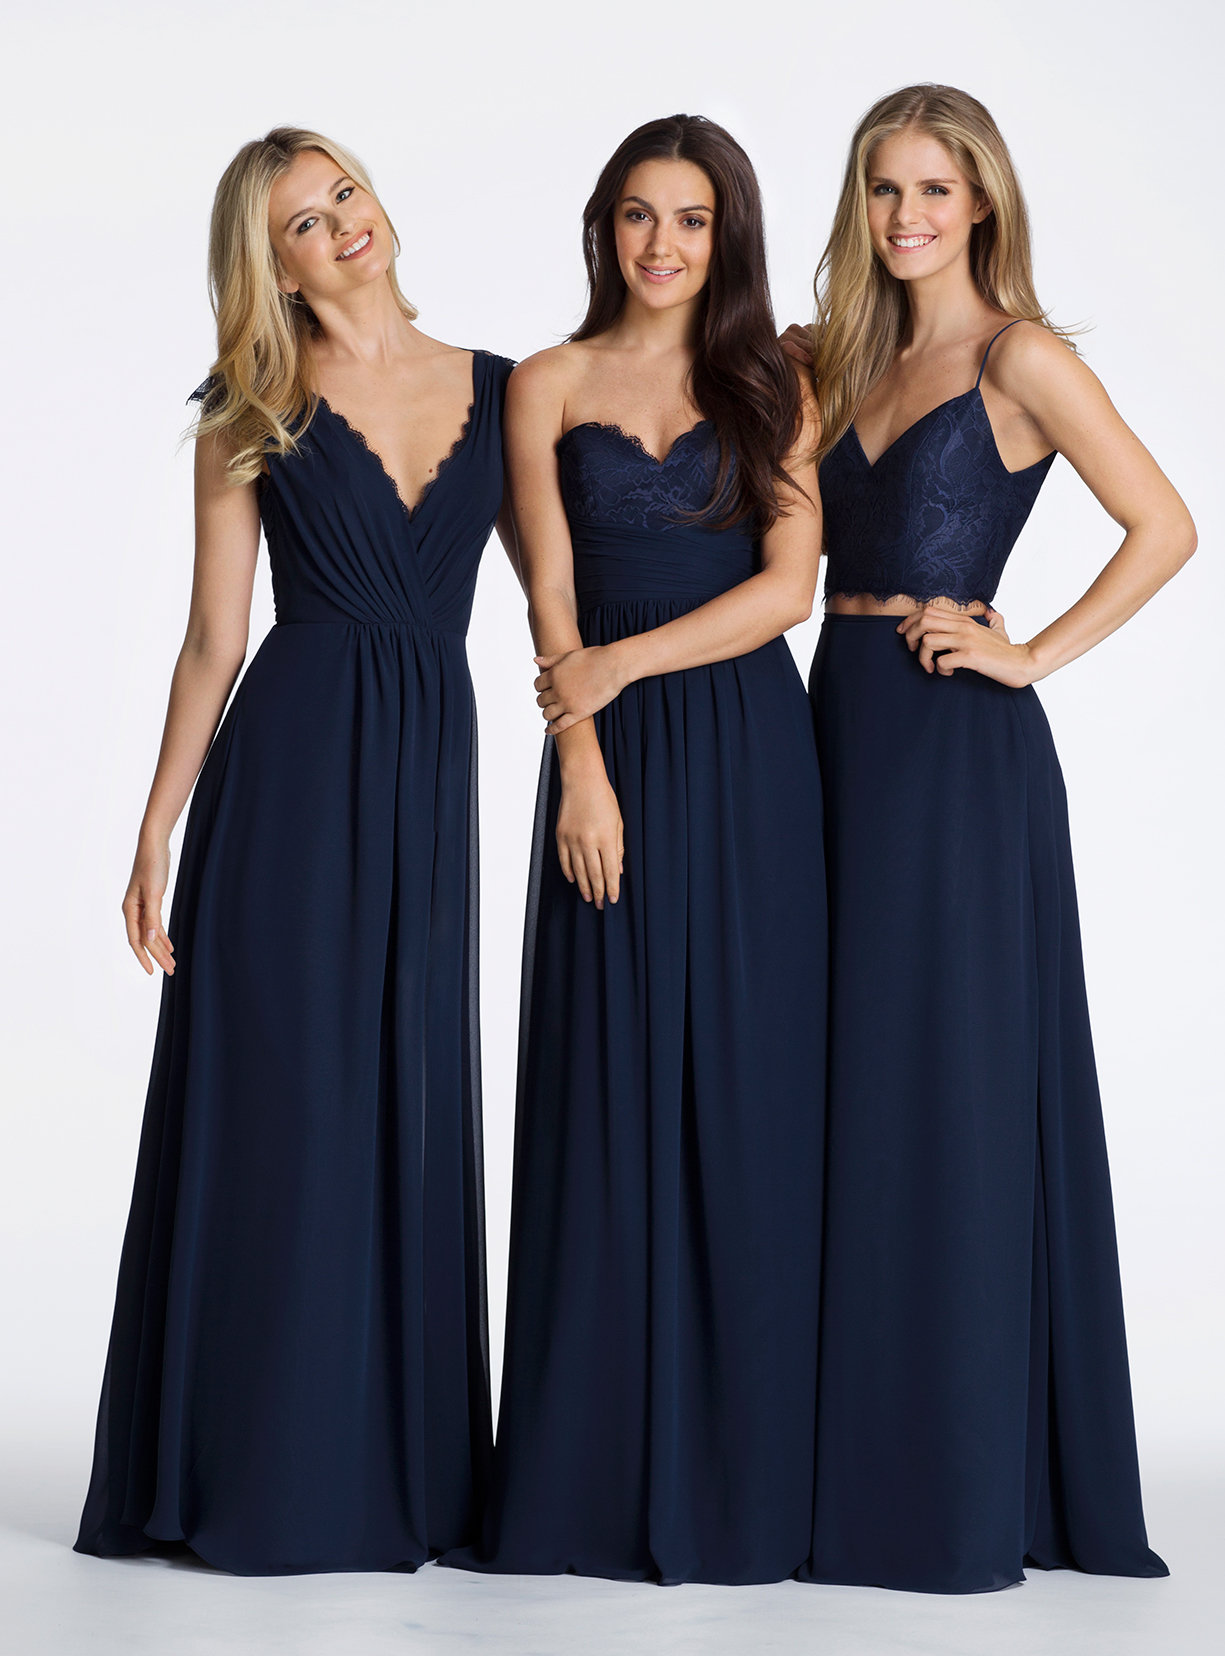 Fanciful Jim Hjelm Occasions Bridesmaid Chiffon A Line Draped V Neckline Lace Trim Cap Sheer Lace Back 5600 X3 Navy Blue Bridesmaid Dresses Near Turlock Ca Navy Blue Bridesmaid Dresses Tall Women wedding dress Navy Blue Bridesmaid Dresses